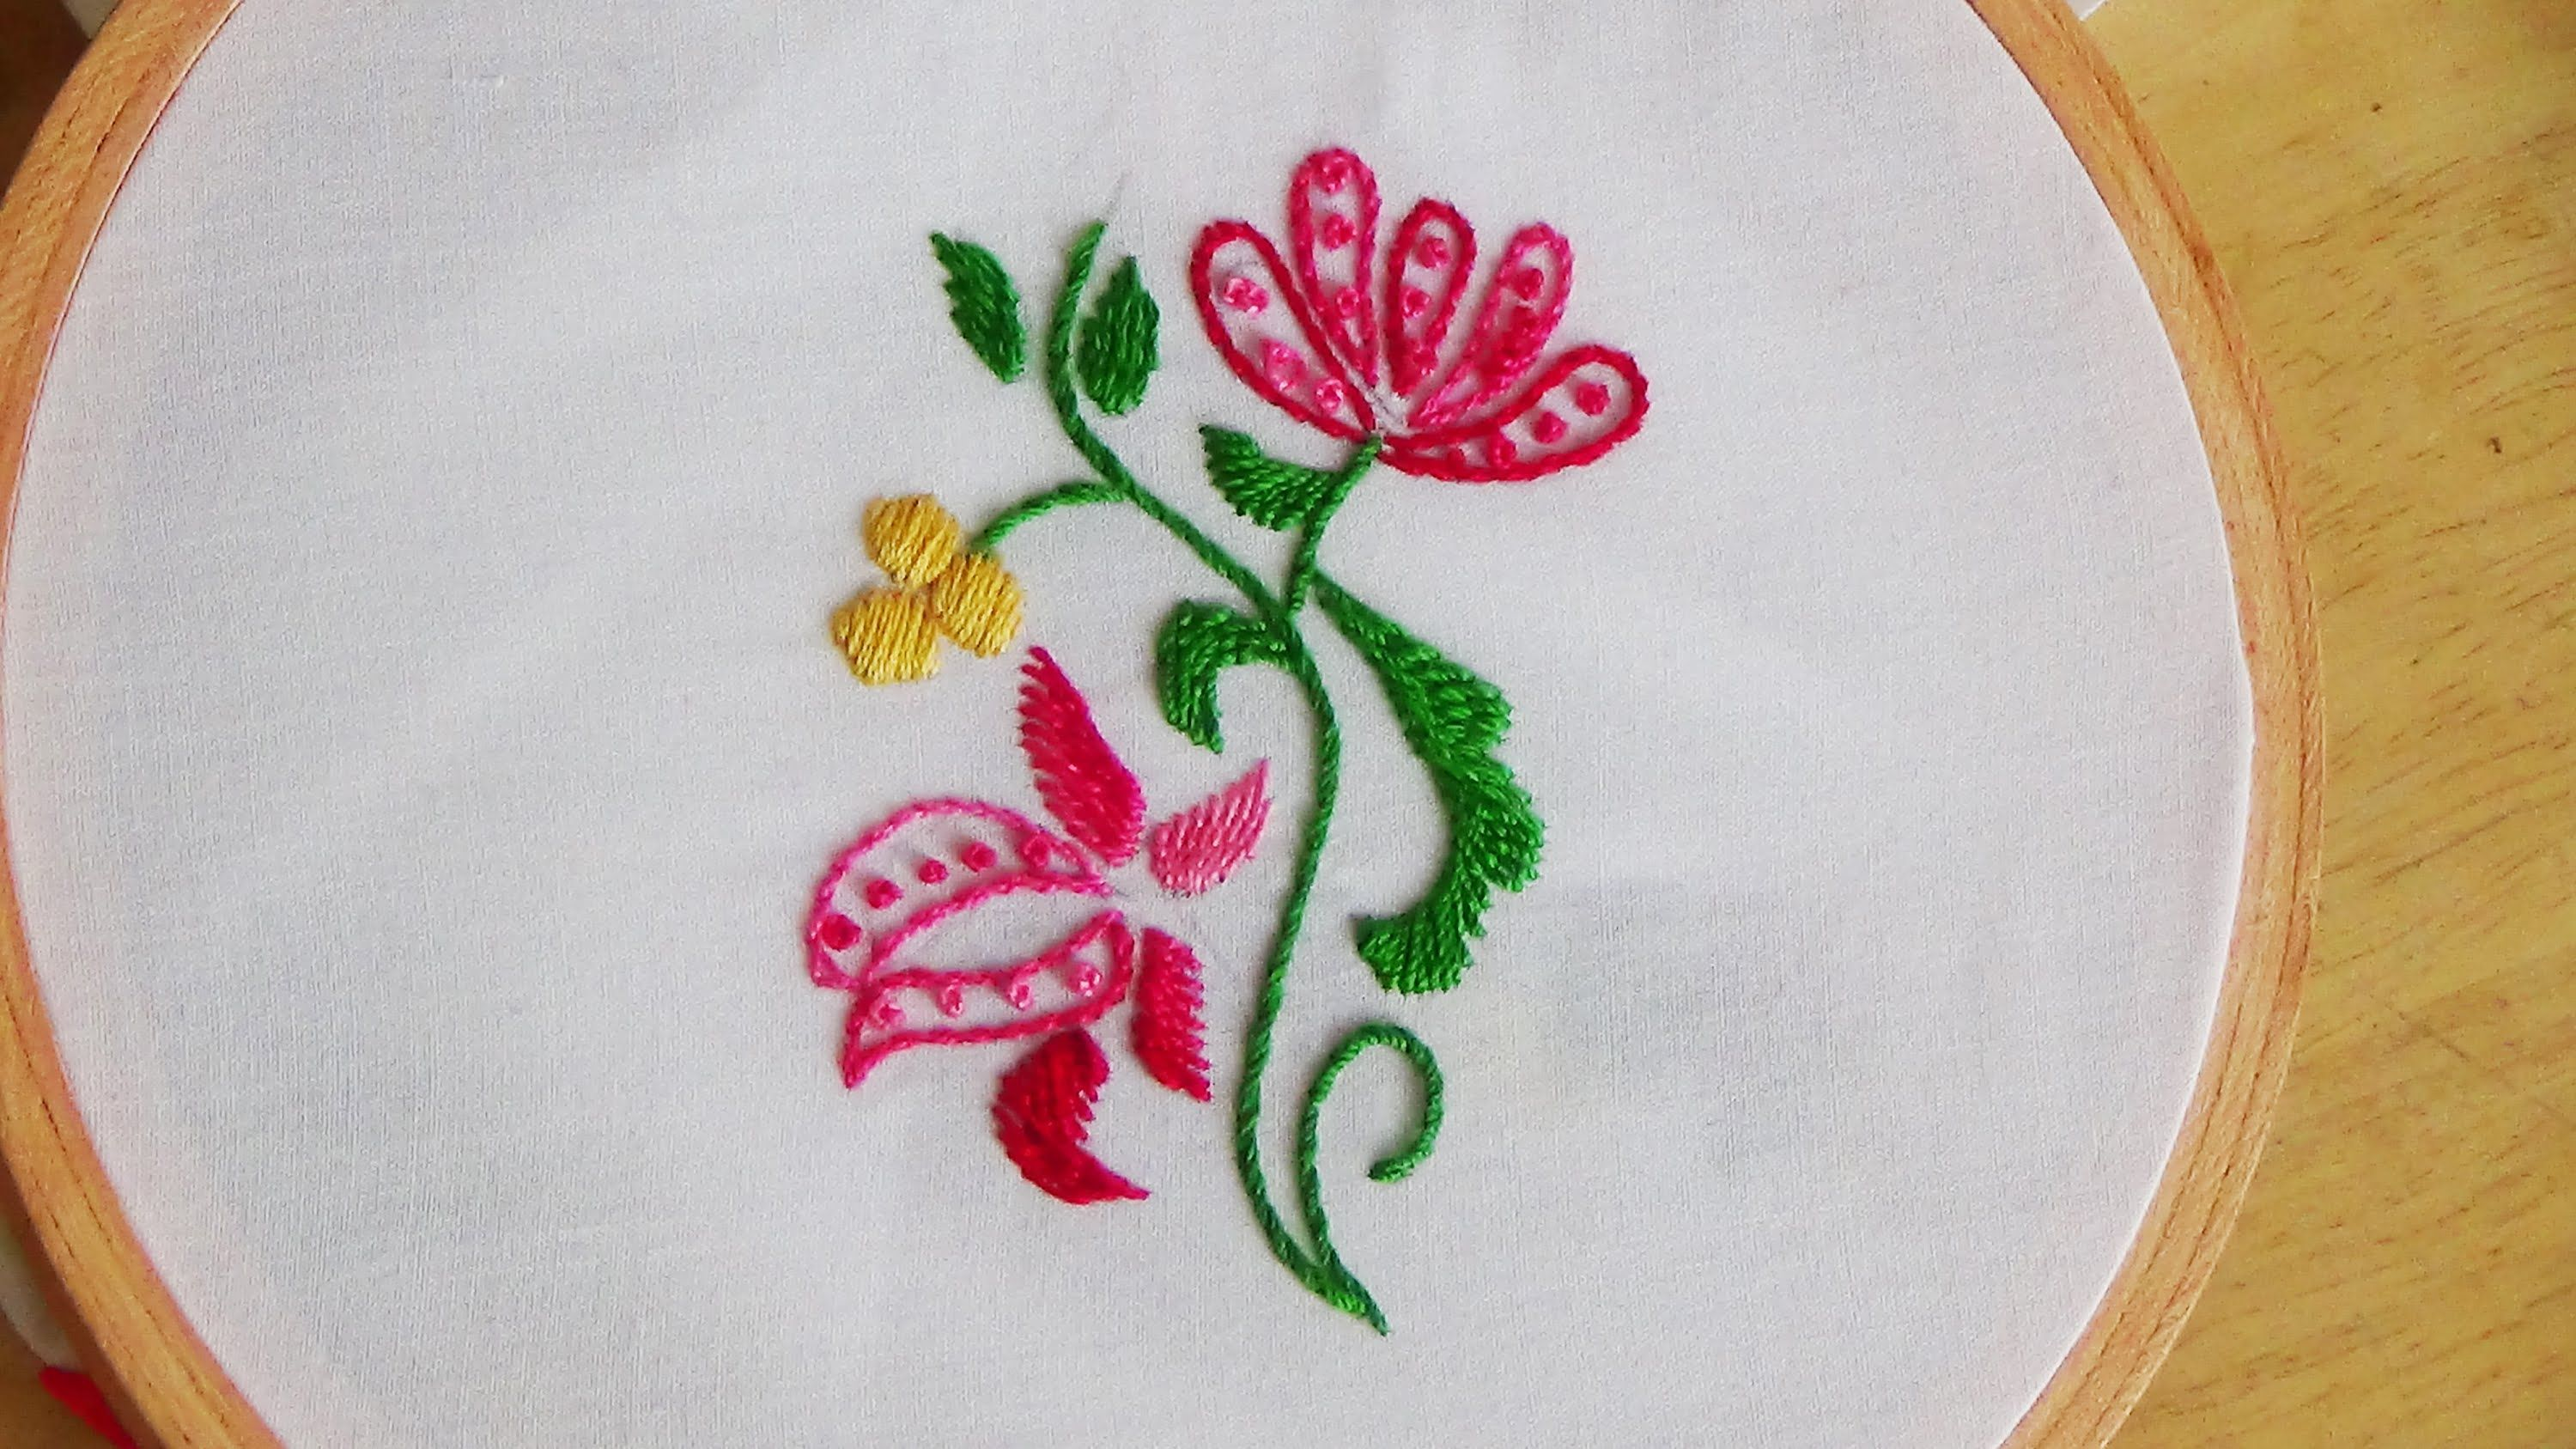 Hand Embroidery French Knot Stitch Filling Youtube Shagufta